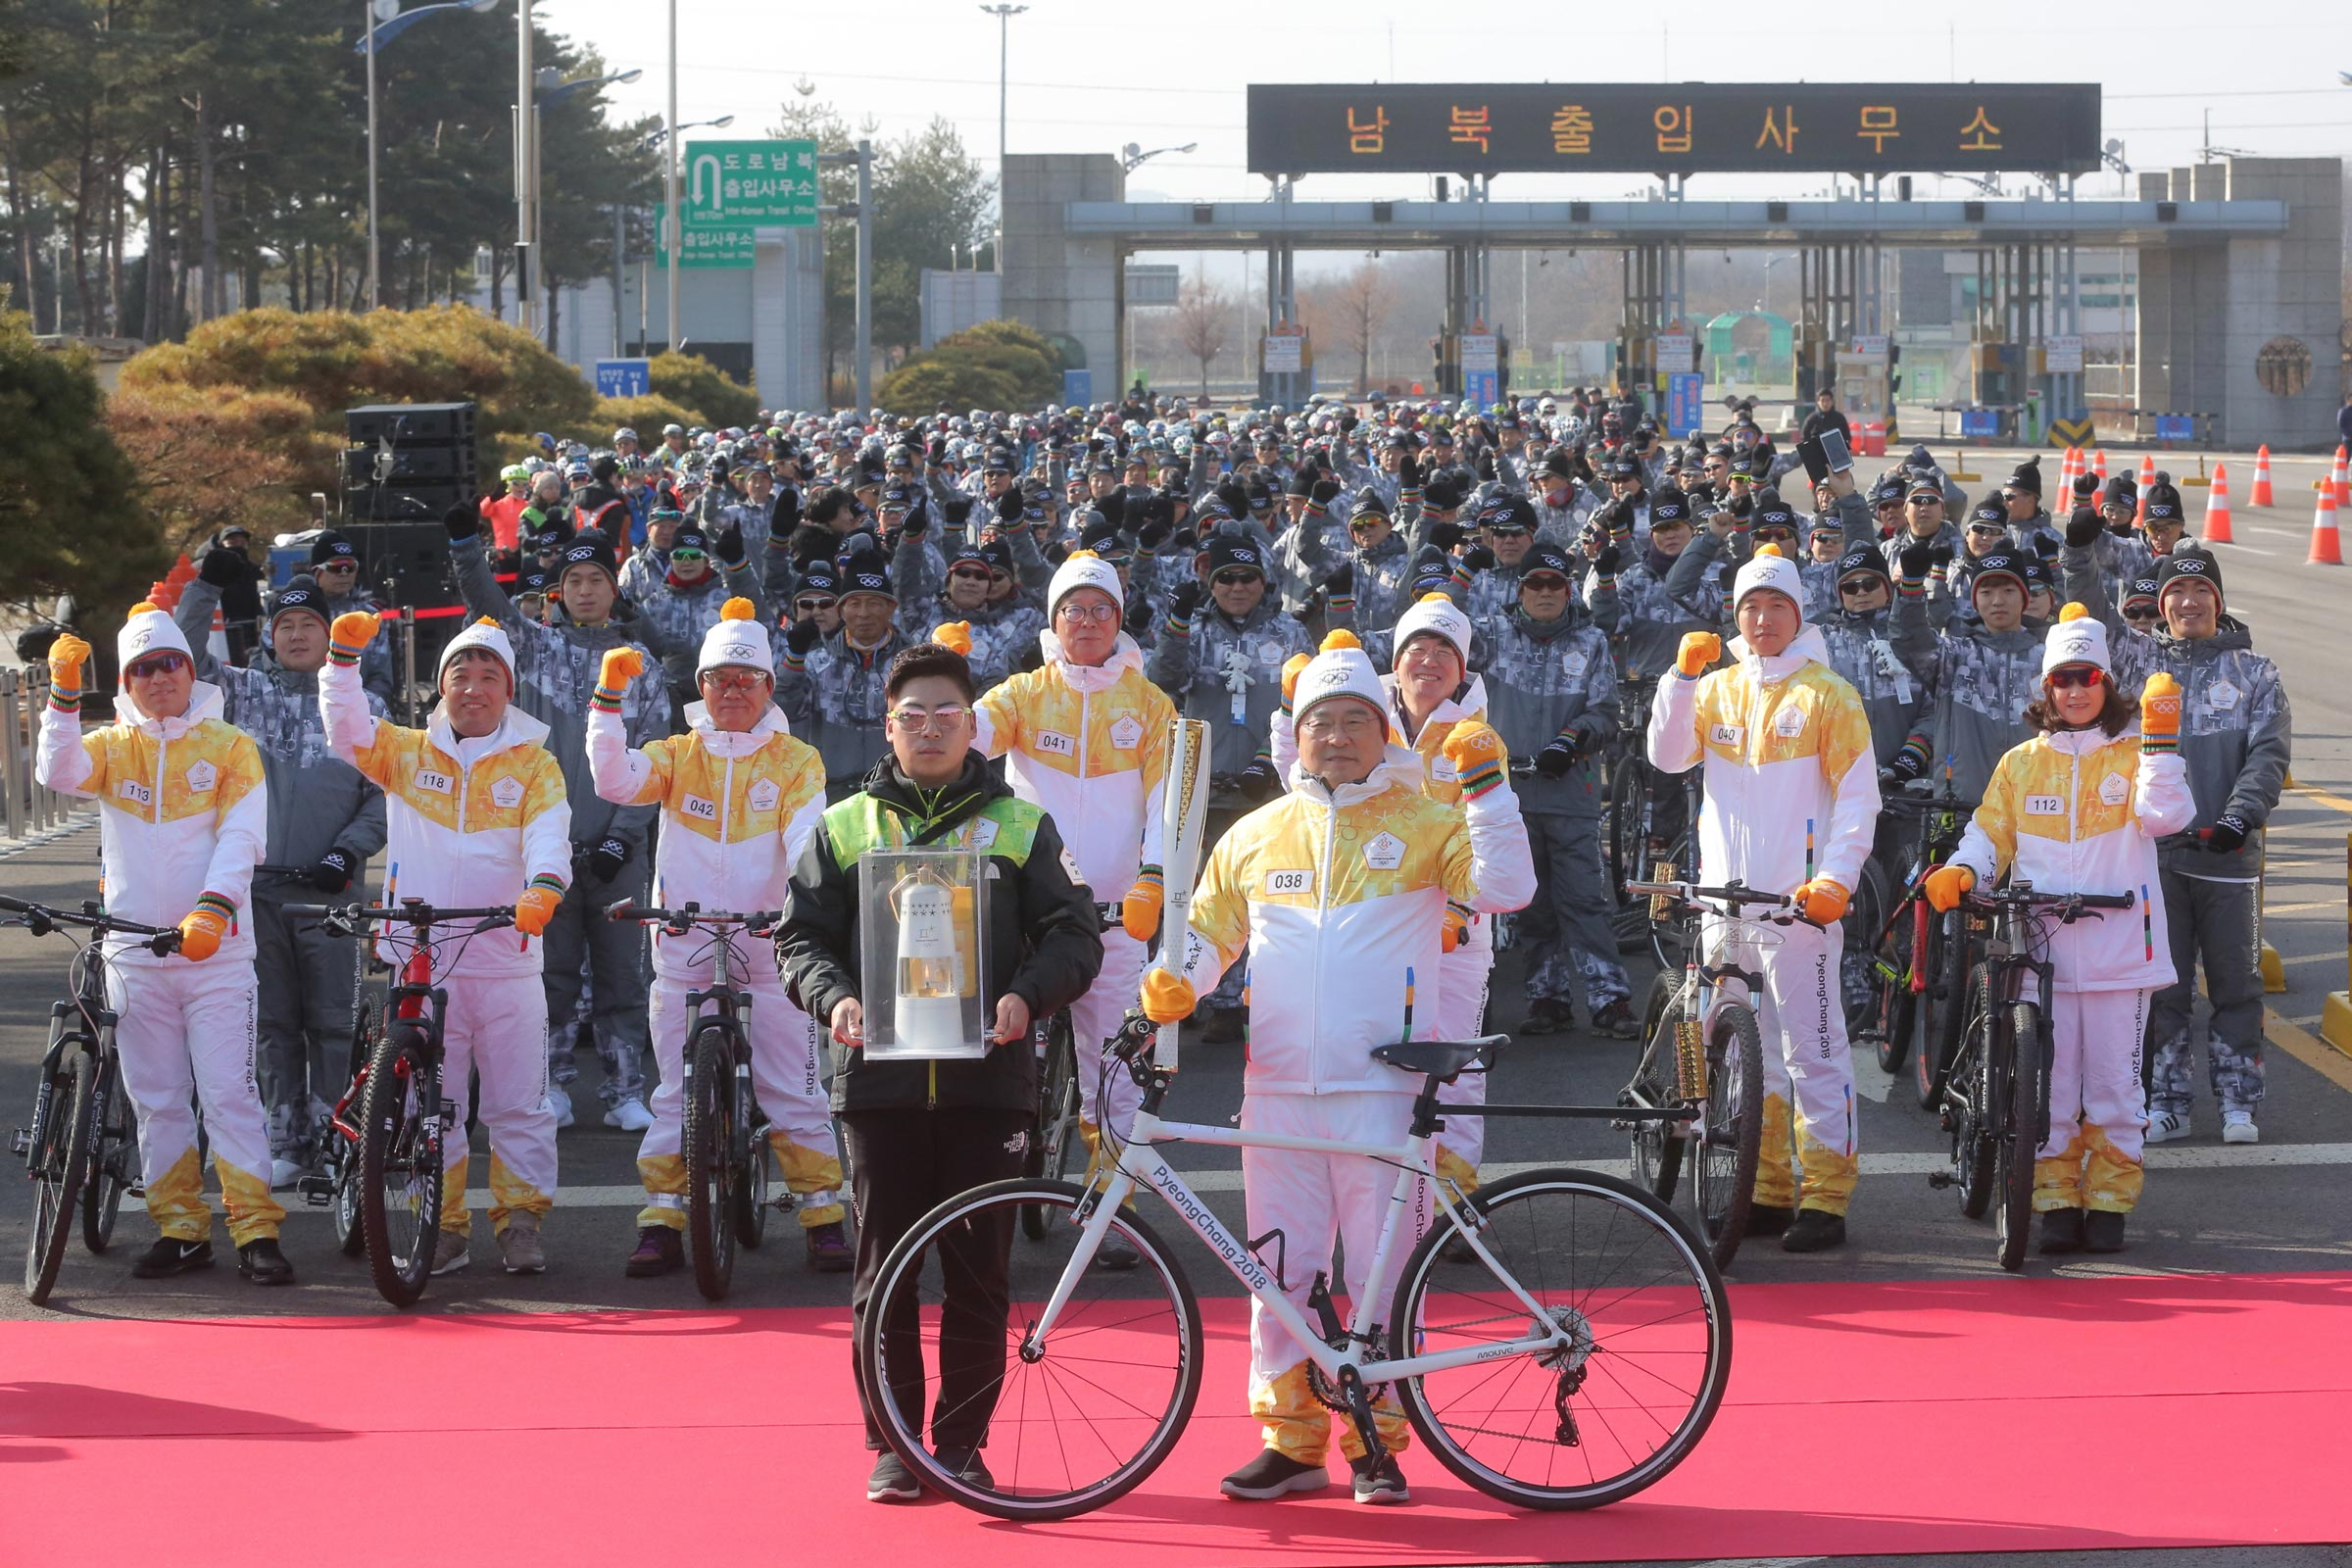 PyeongChang 2018 Olympic Torch Relay - Day 80